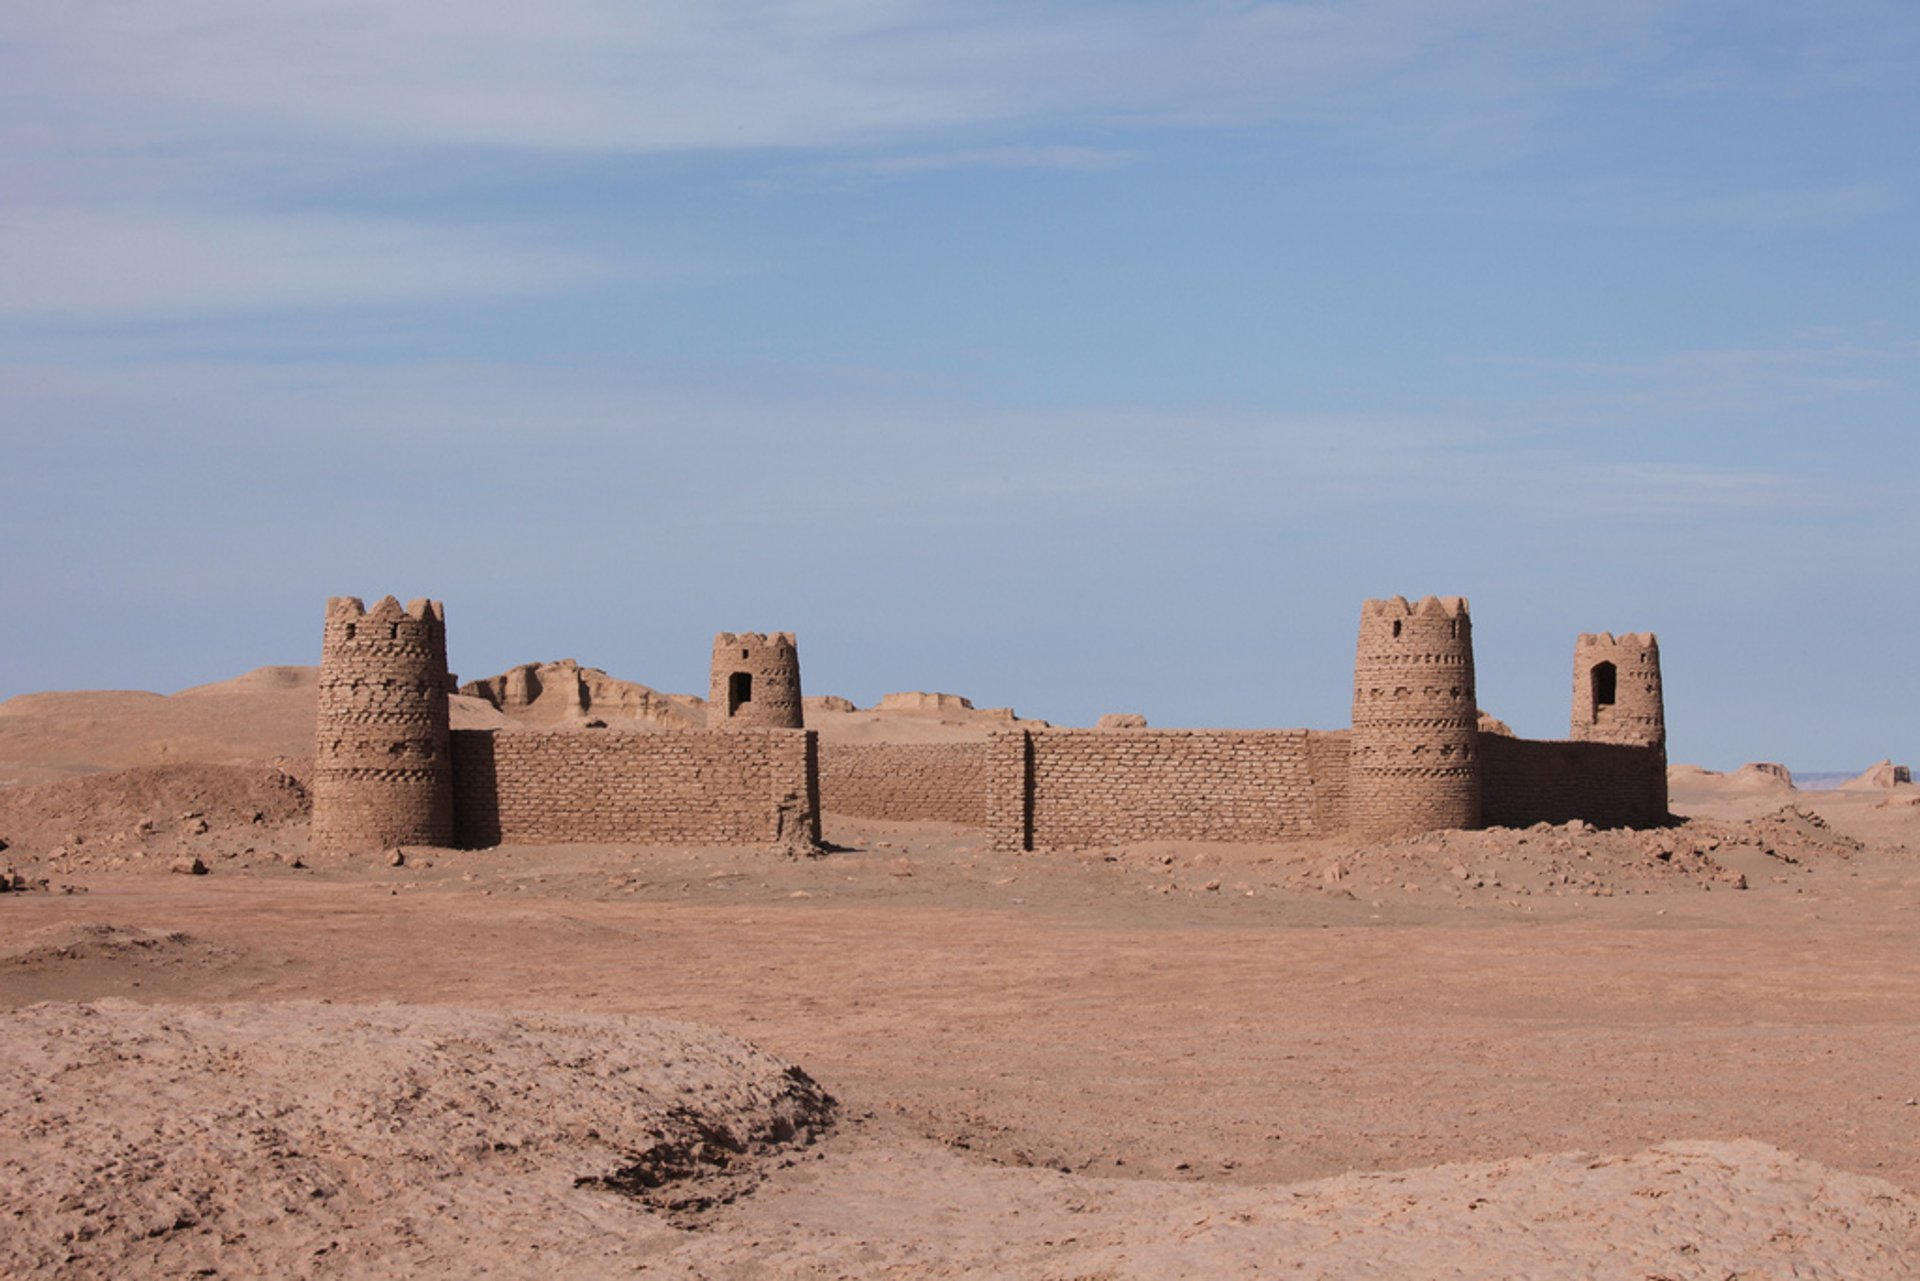 Caravanserai in the desert Dasht-e Lut 2020